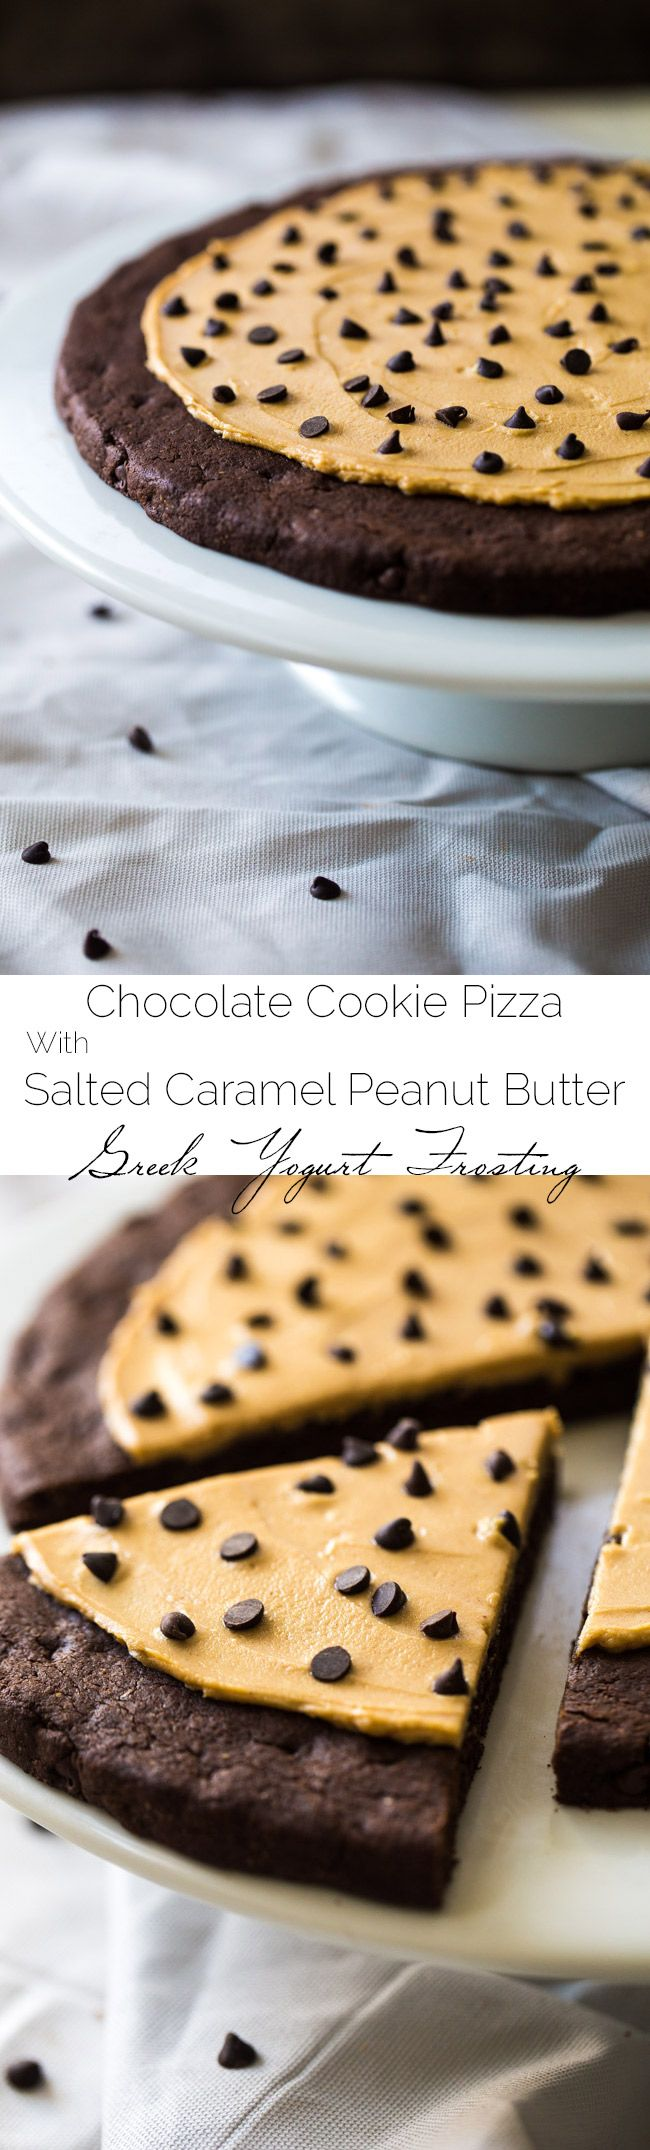 Chocolate Peanut Butter Cookie Pizza - You would never know it's gluten free and made with Greek yogurt! Ready in under 30 mins!   Foodfaithfitness.com   @FoodFaithFit @skippybrand